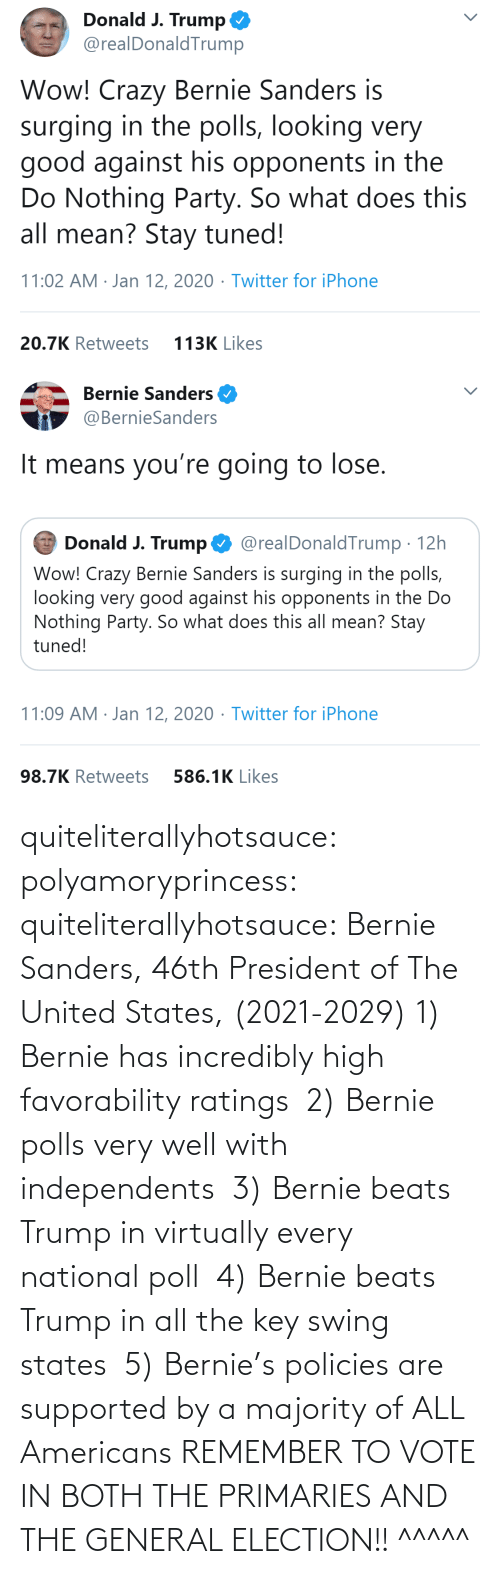 United: quiteliterallyhotsauce:  polyamoryprincess:  quiteliterallyhotsauce:   Bernie Sanders, 46th President of The United States, (2021-2029)    1) Bernie has incredibly high favorability ratings  2) Bernie polls very well with independents  3) Bernie beats Trump in virtually every national poll  4) Bernie beats Trump in all the key swing states  5) Bernie's policies are supported by a majority of ALL Americans    REMEMBER TO VOTE IN BOTH THE PRIMARIES AND THE GENERAL ELECTION!!  ^^^^^